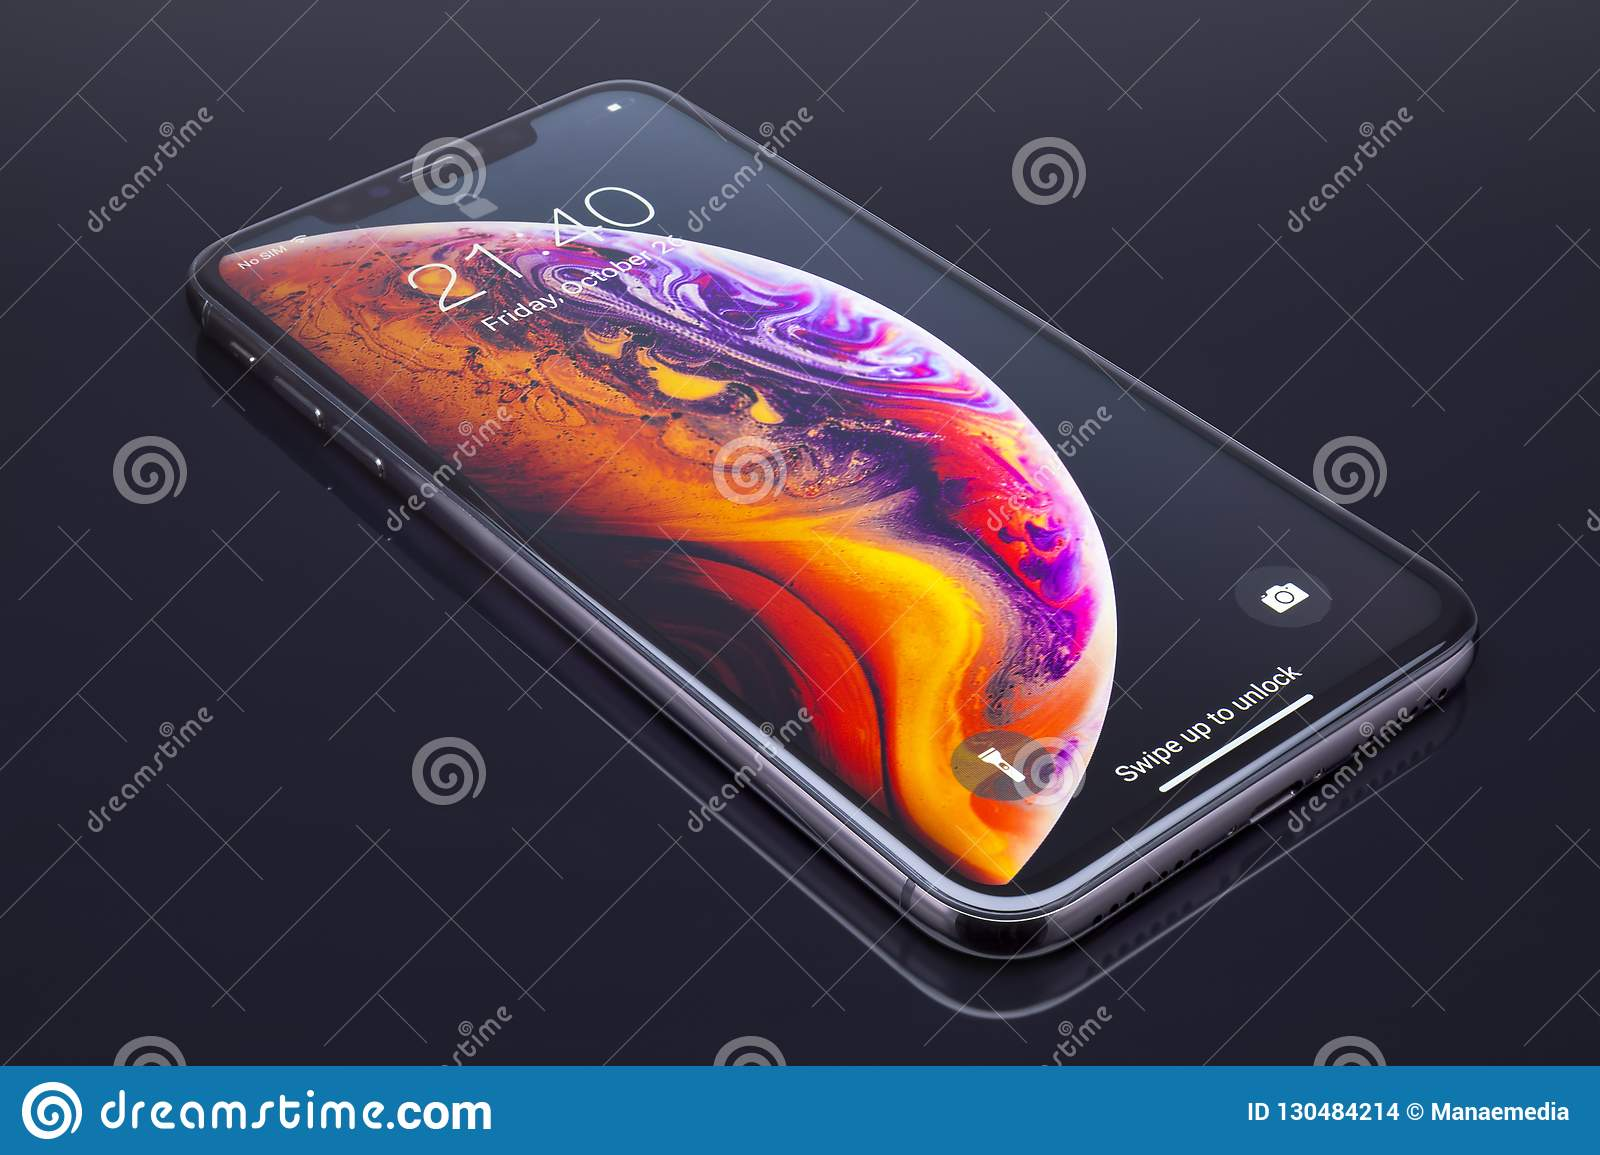 Iphone Xs Max On Black Glass Editorial Stock Image Image